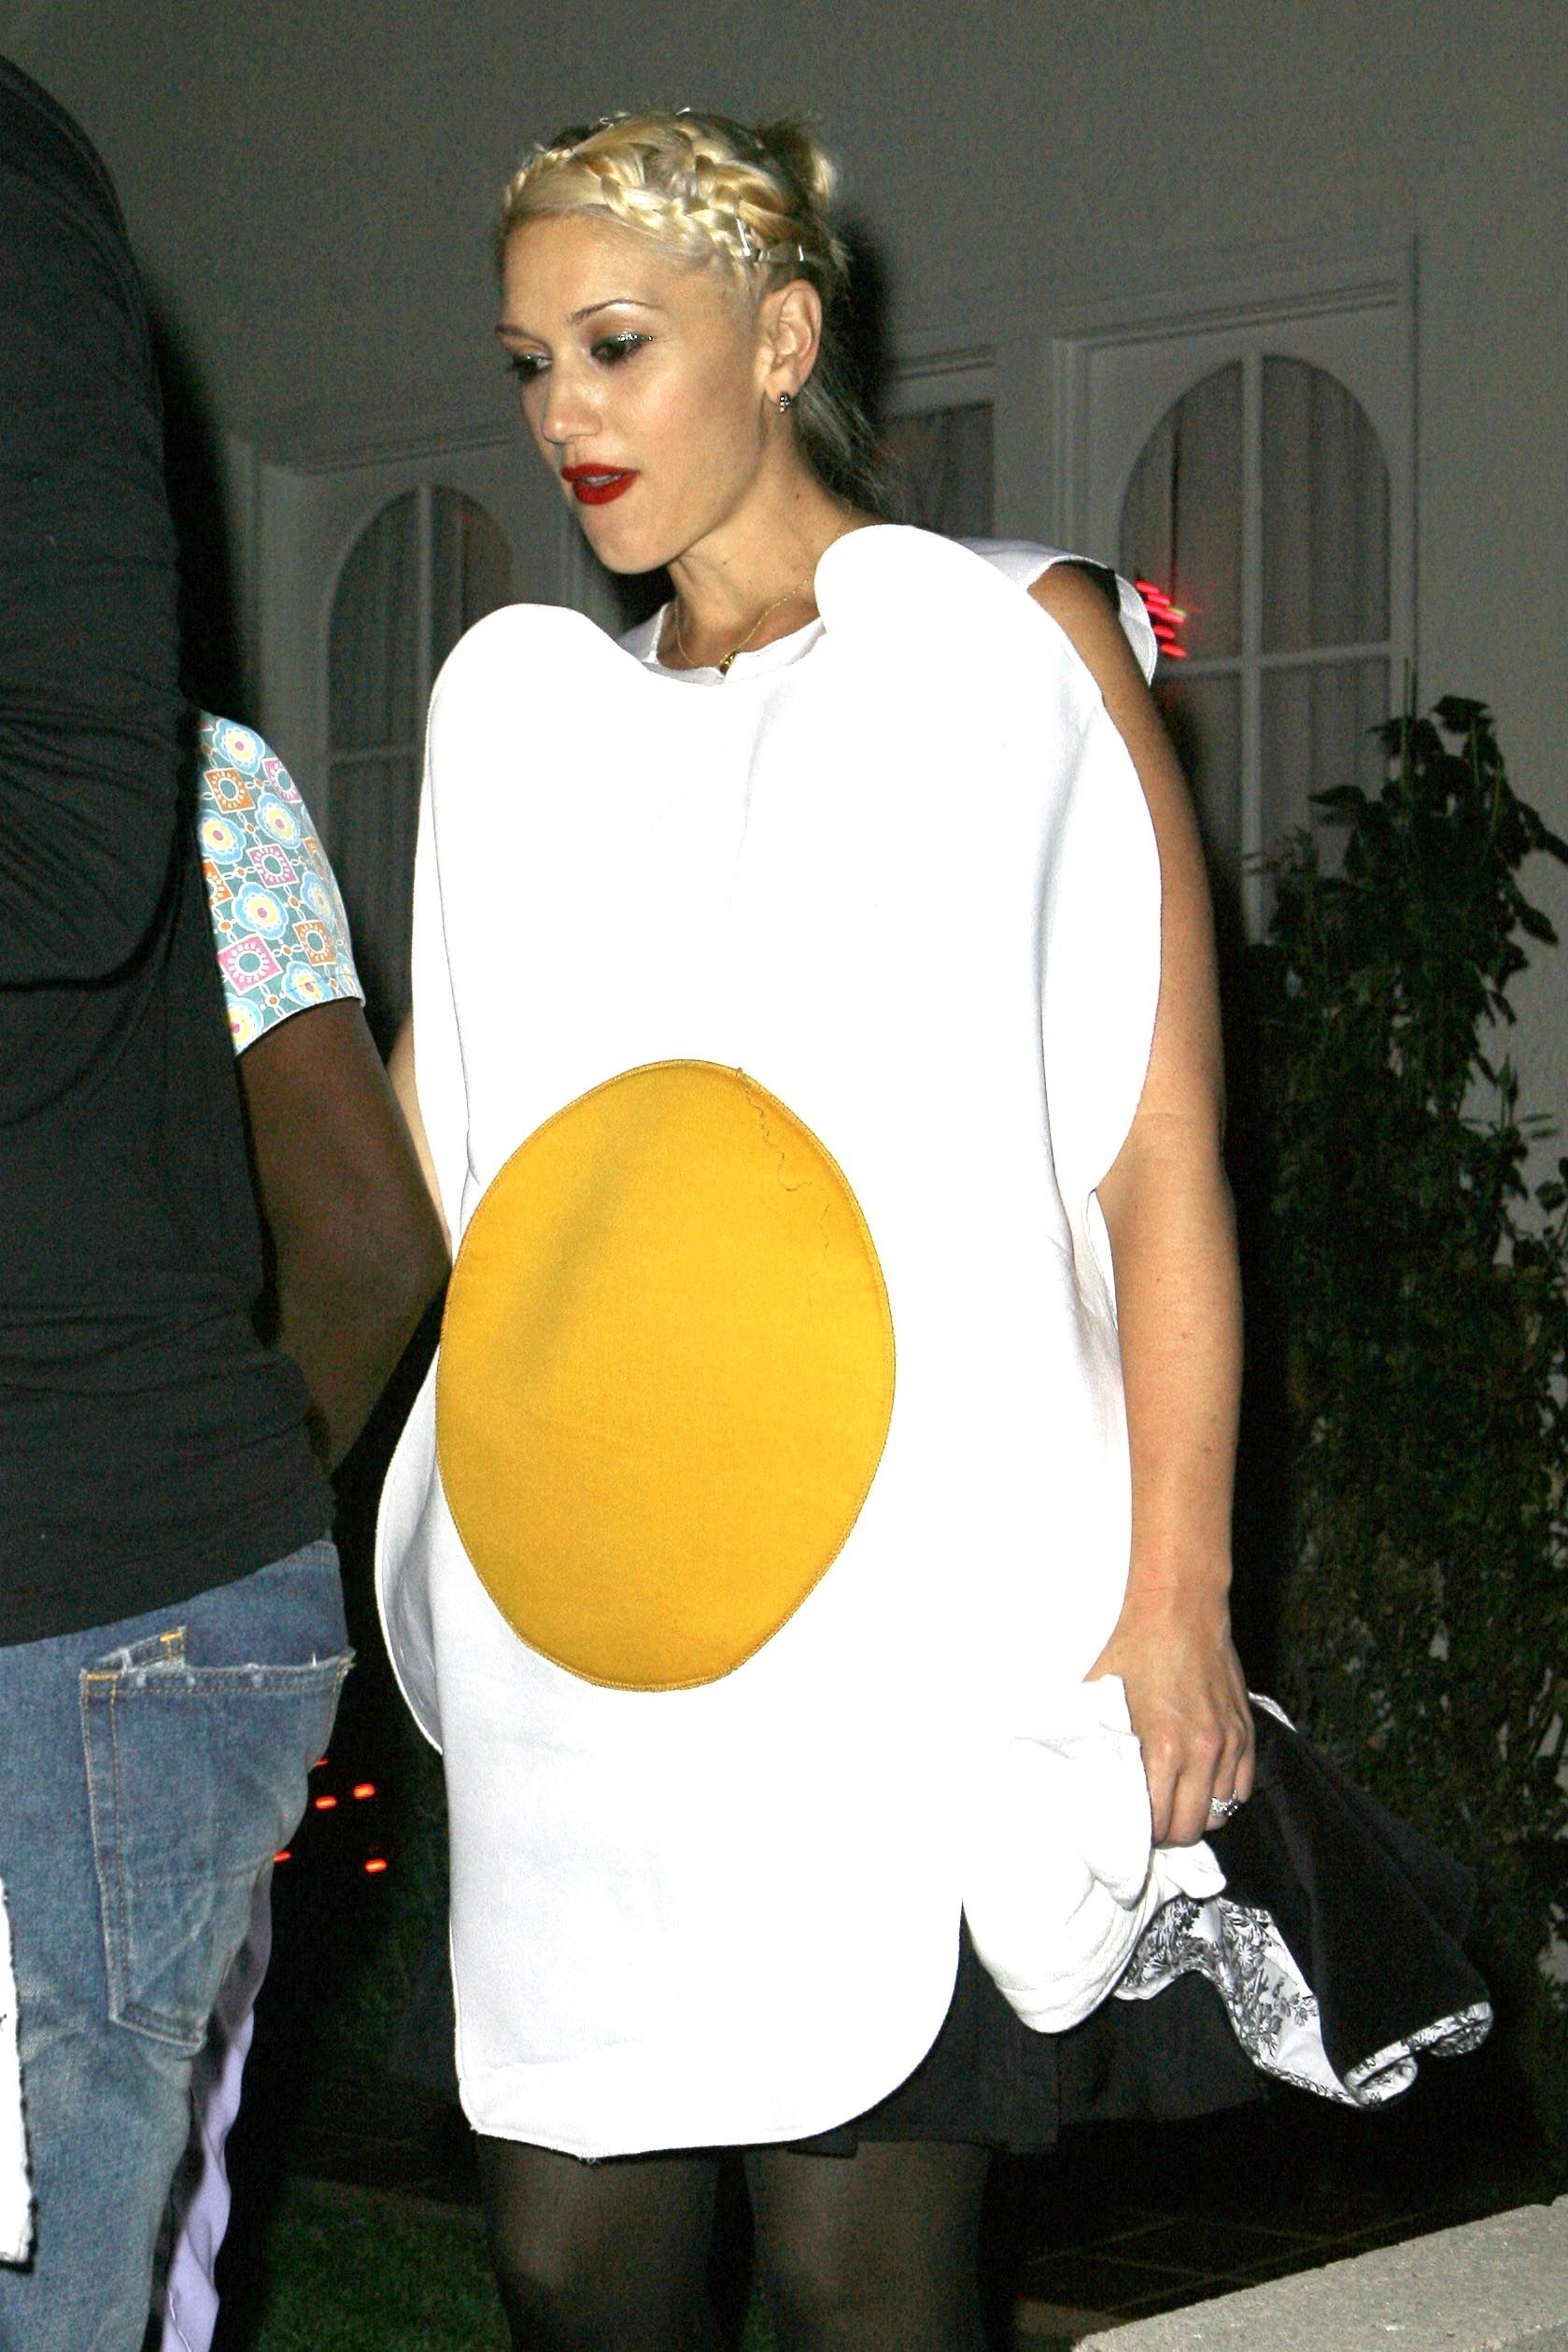 GWEN STEFANI AND GAVIN ROSSDALE AT HALLOWEEN PARTY IN LOS ANGELES